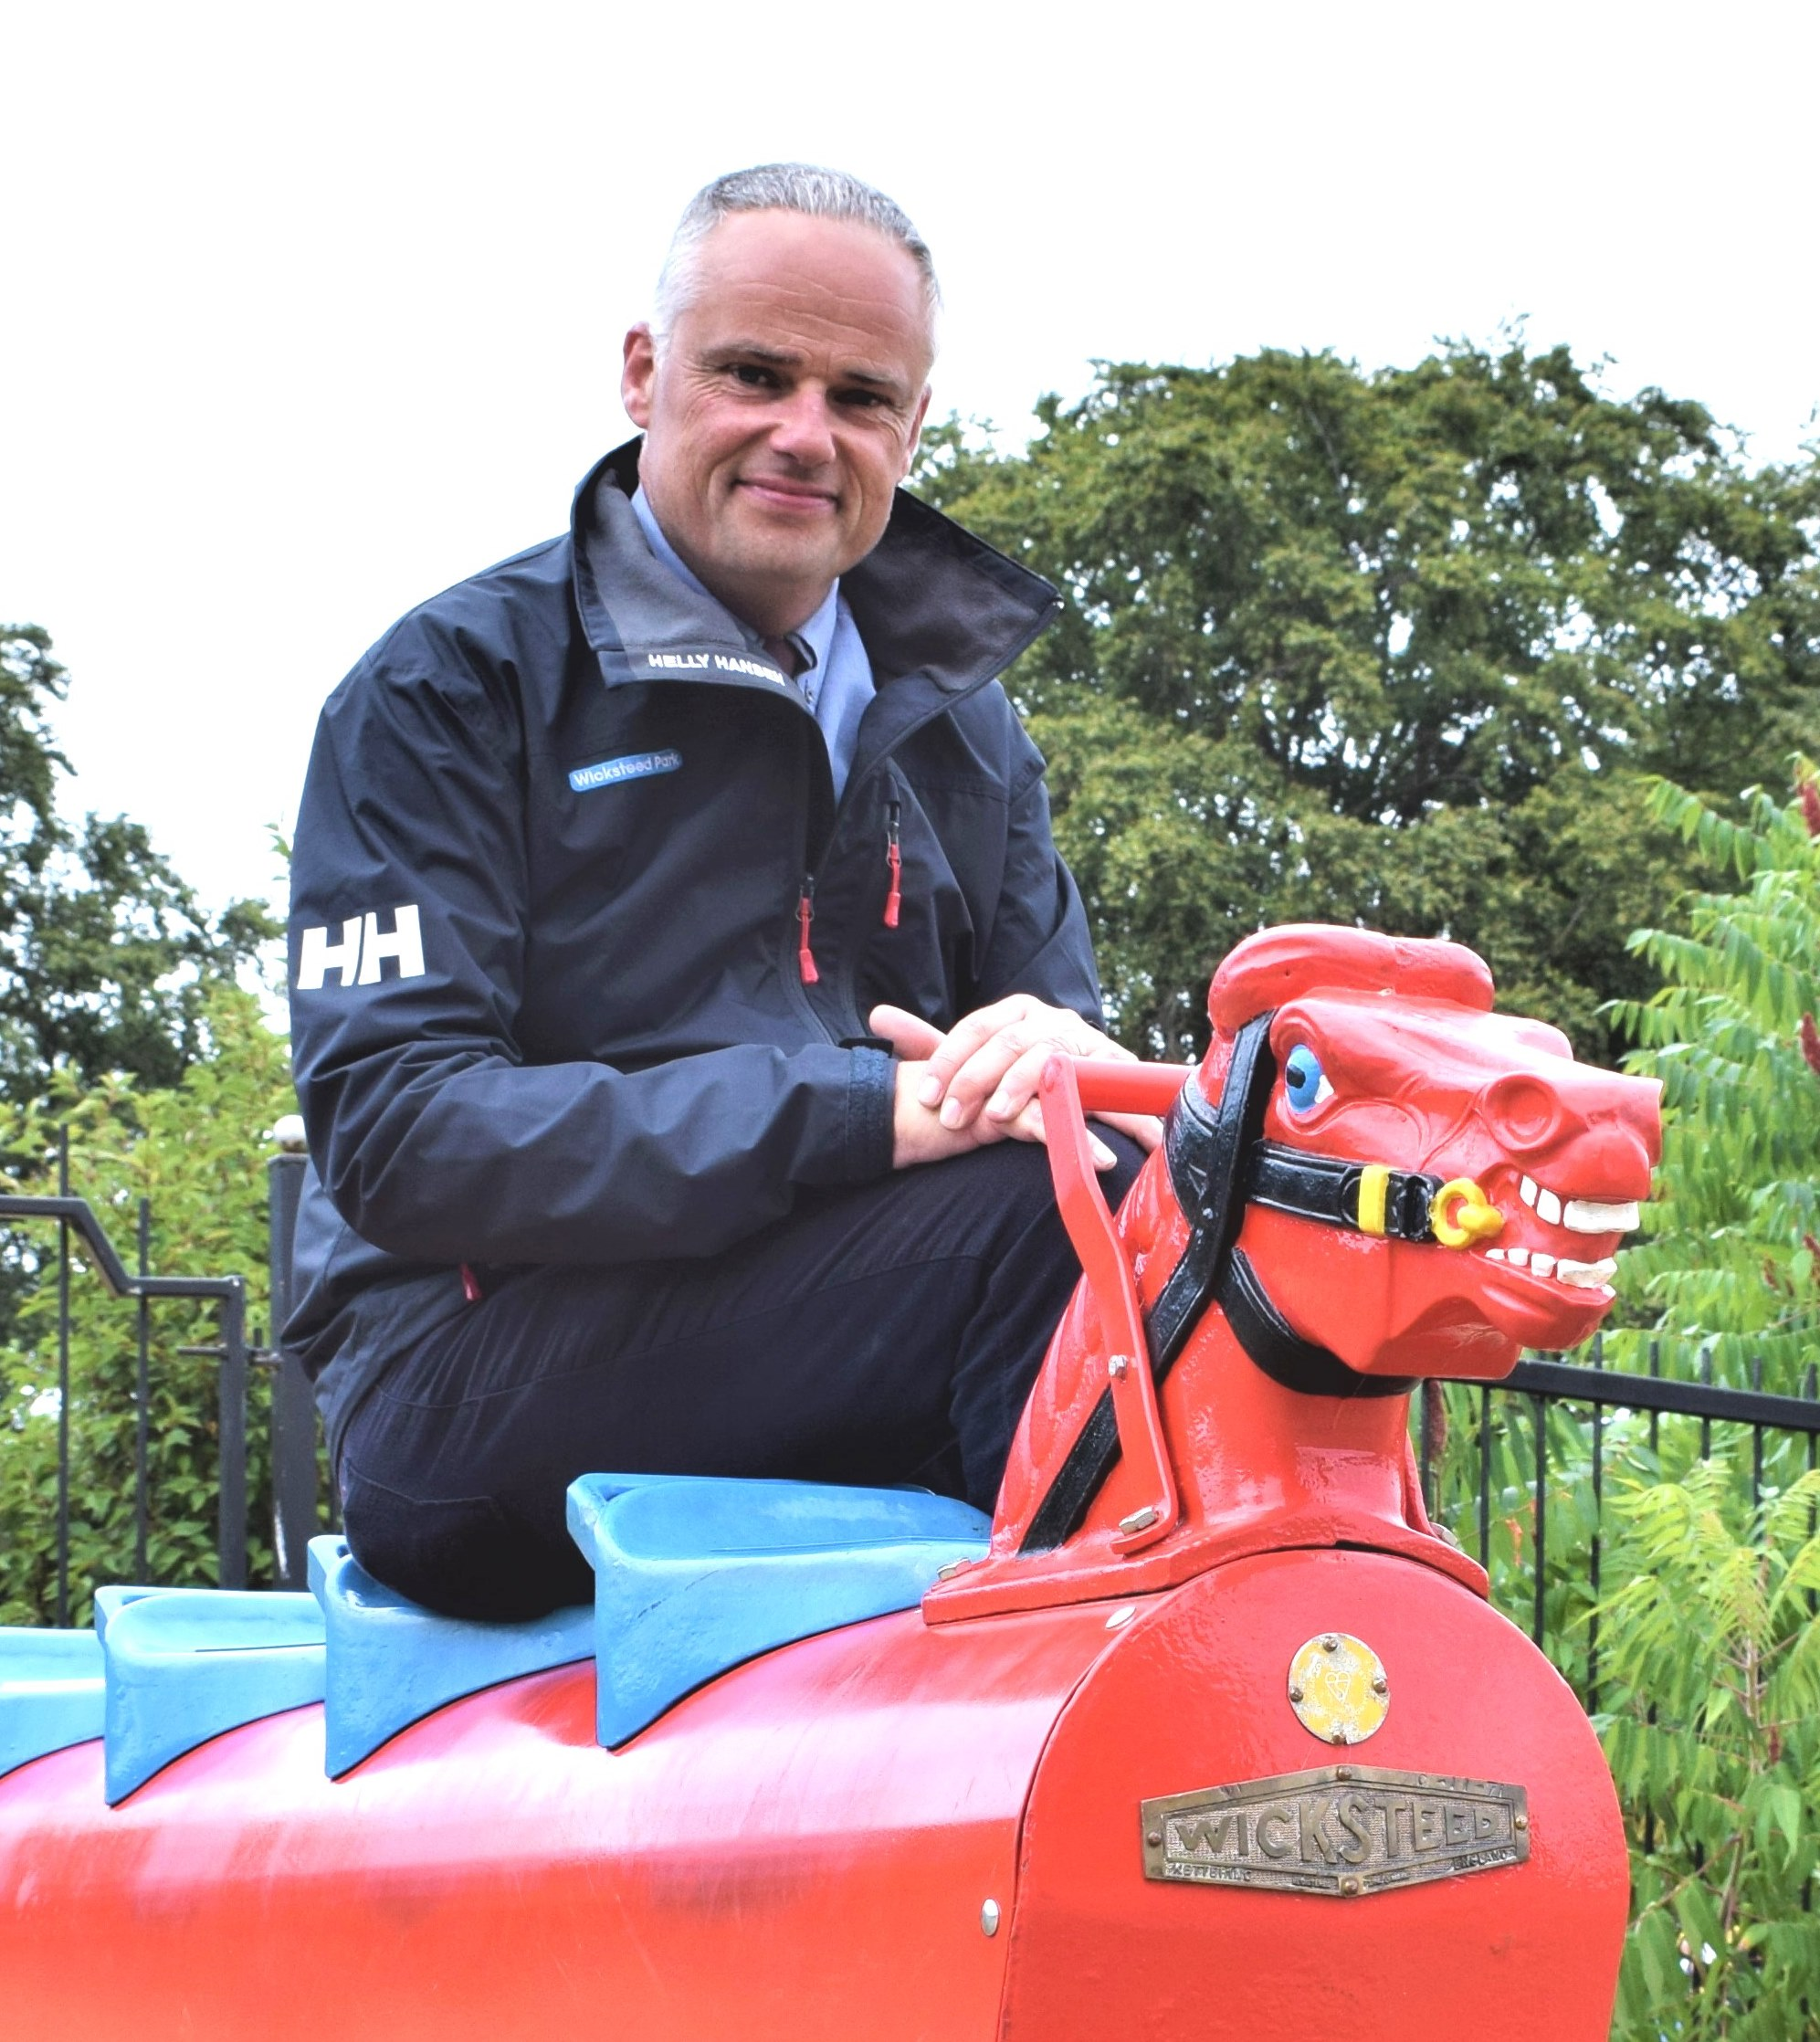 Wicksteed Park appoints Ian Bartlett as managing director